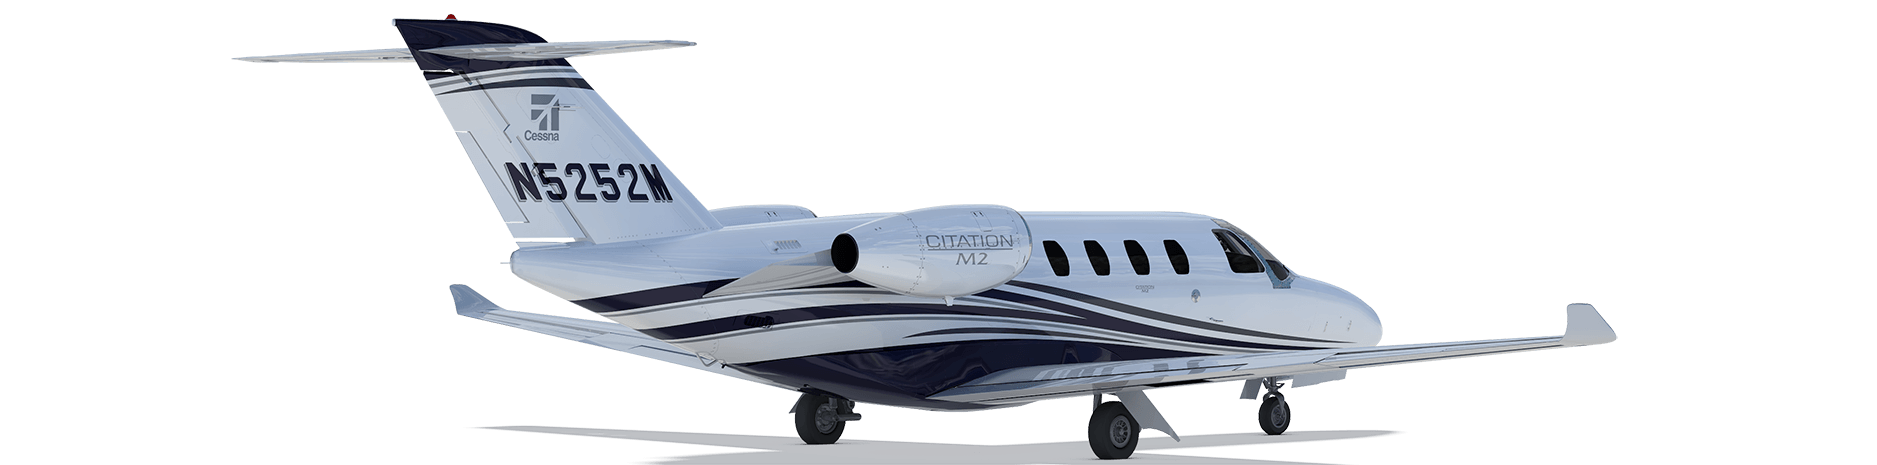 Cessna-Citation-525-4